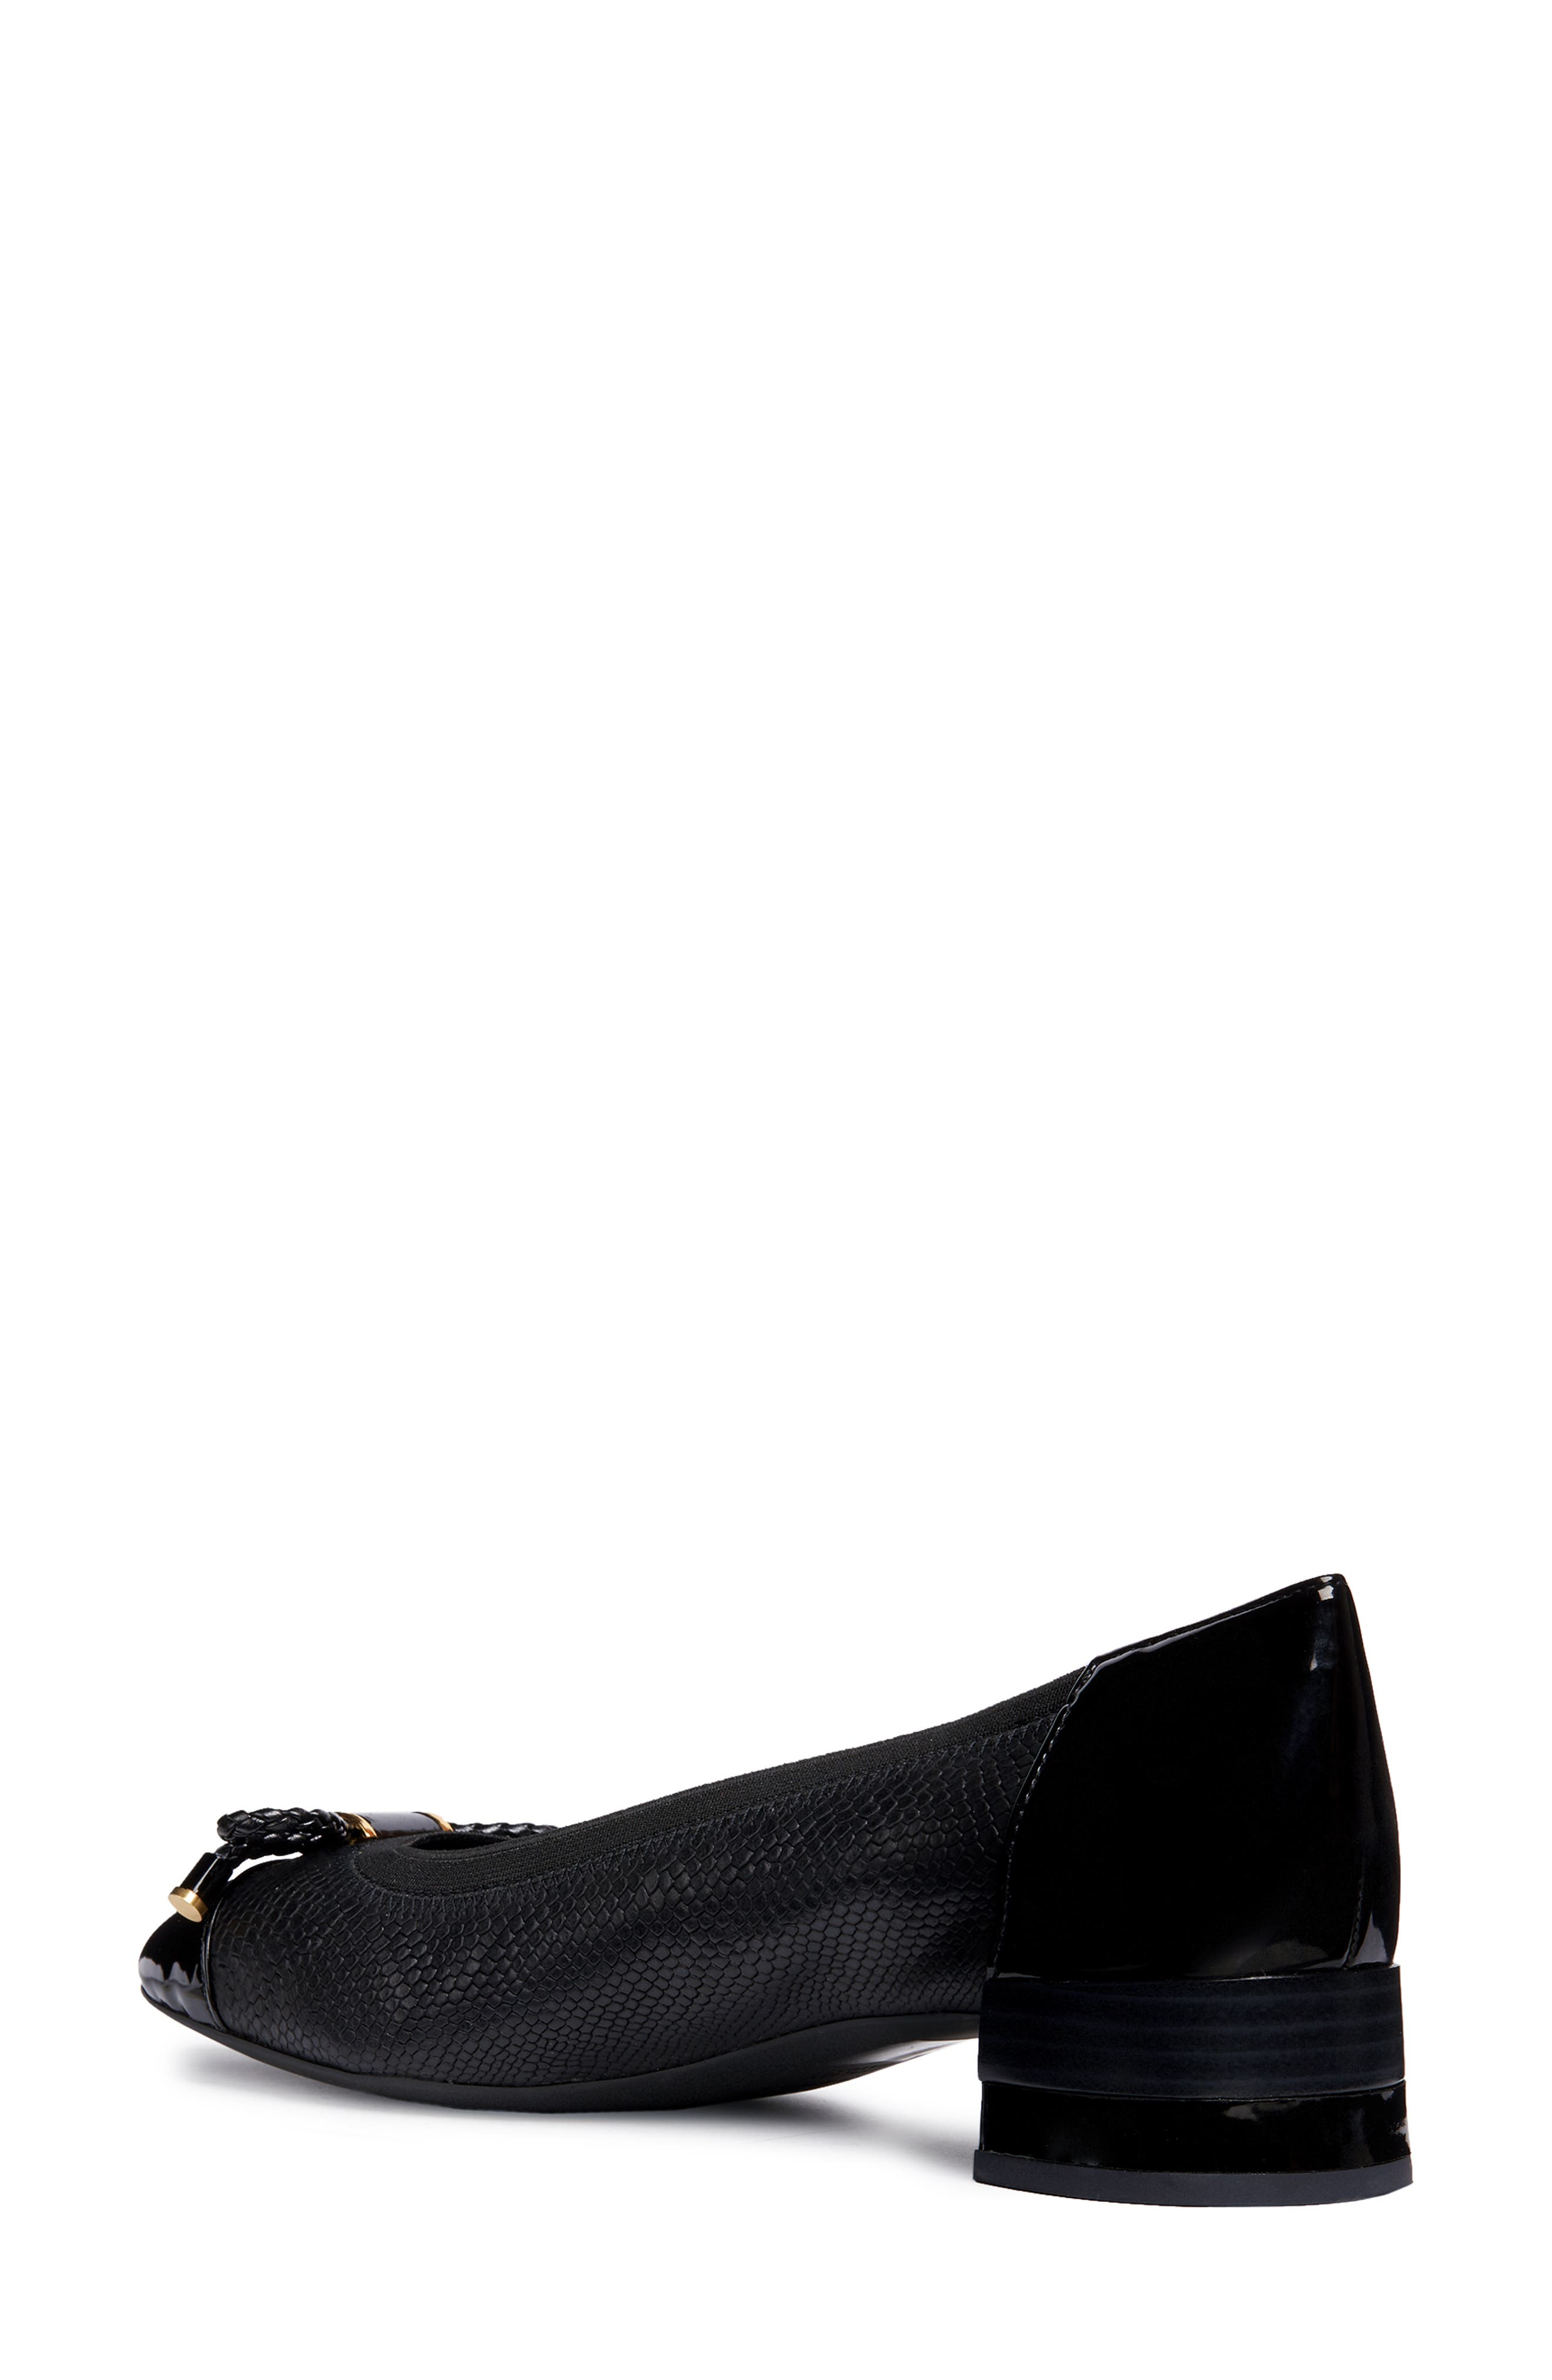 Chloo Pump,                             Alternate thumbnail 2, color,                             BLACK LEATHER